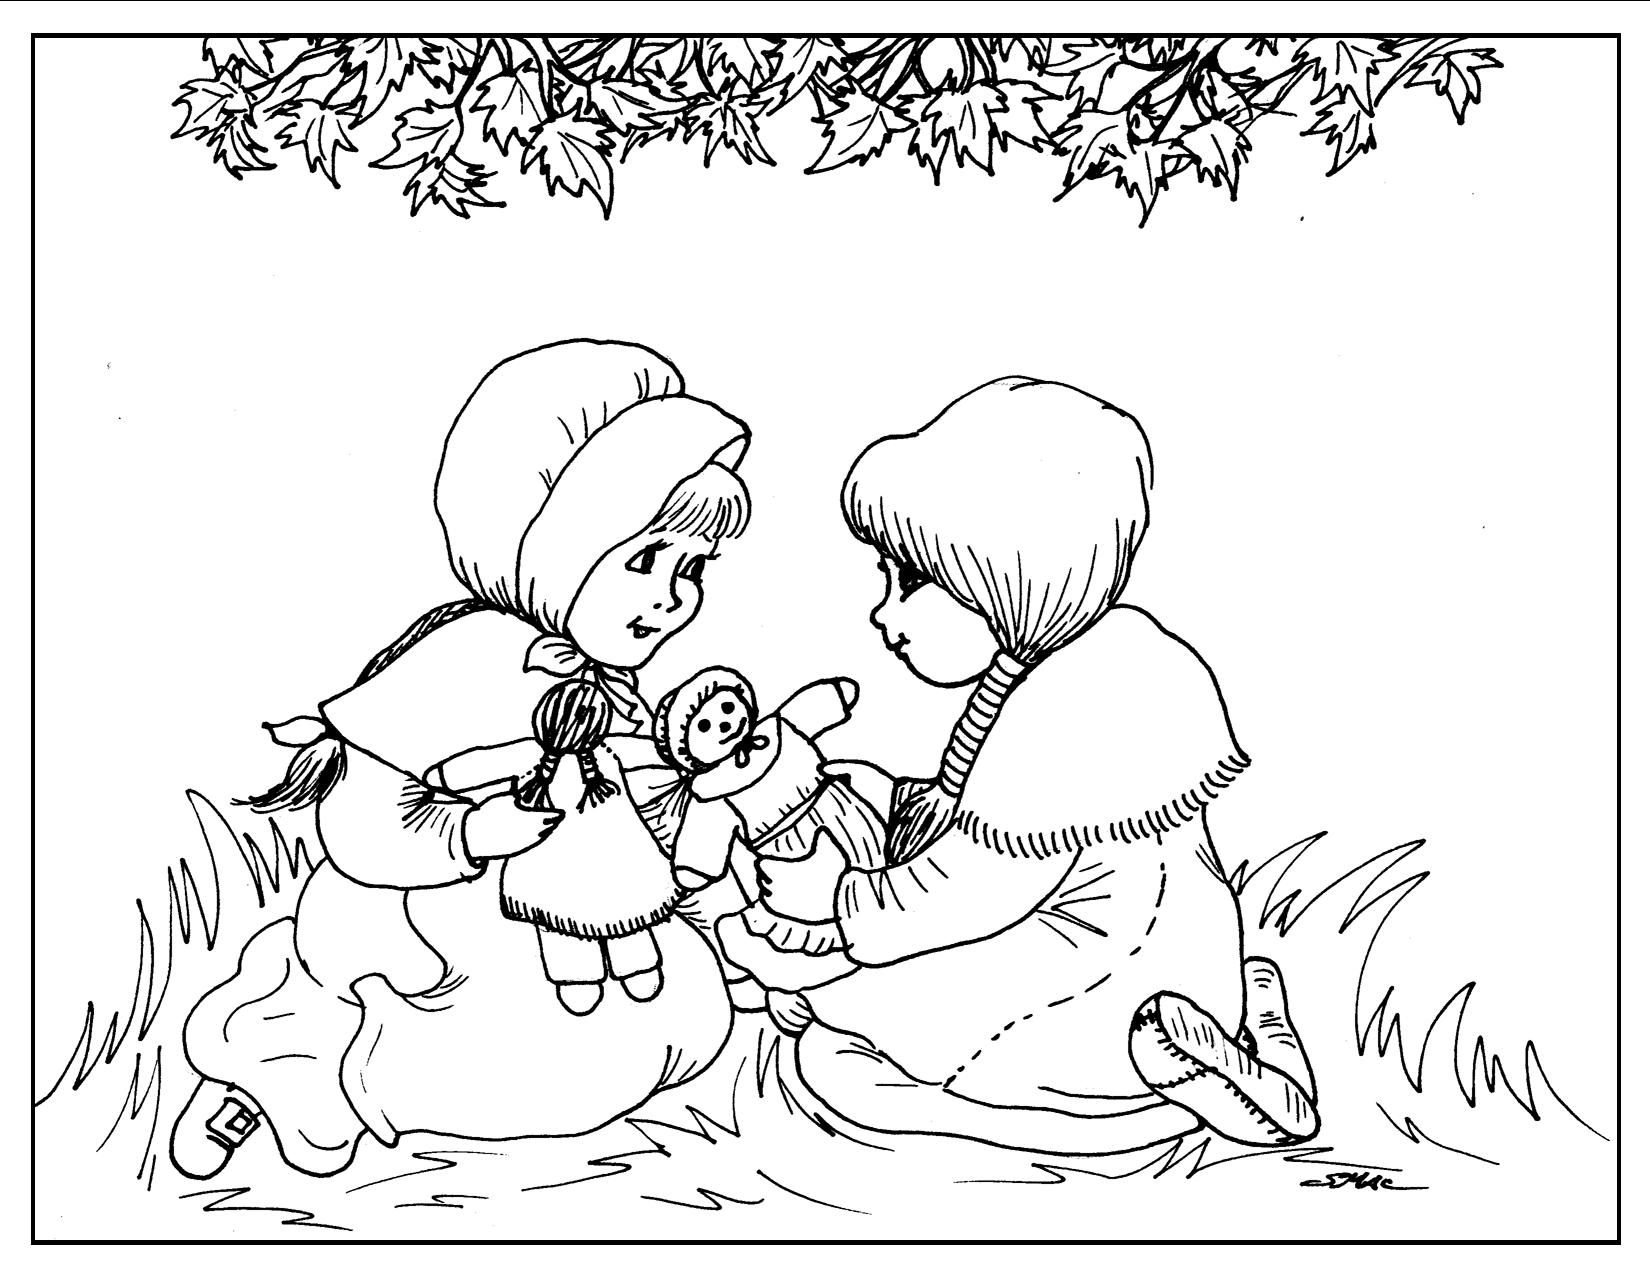 S macs coloring pages for all ages com - Thanksgiving Coloring Pages S Mac S Place To Be